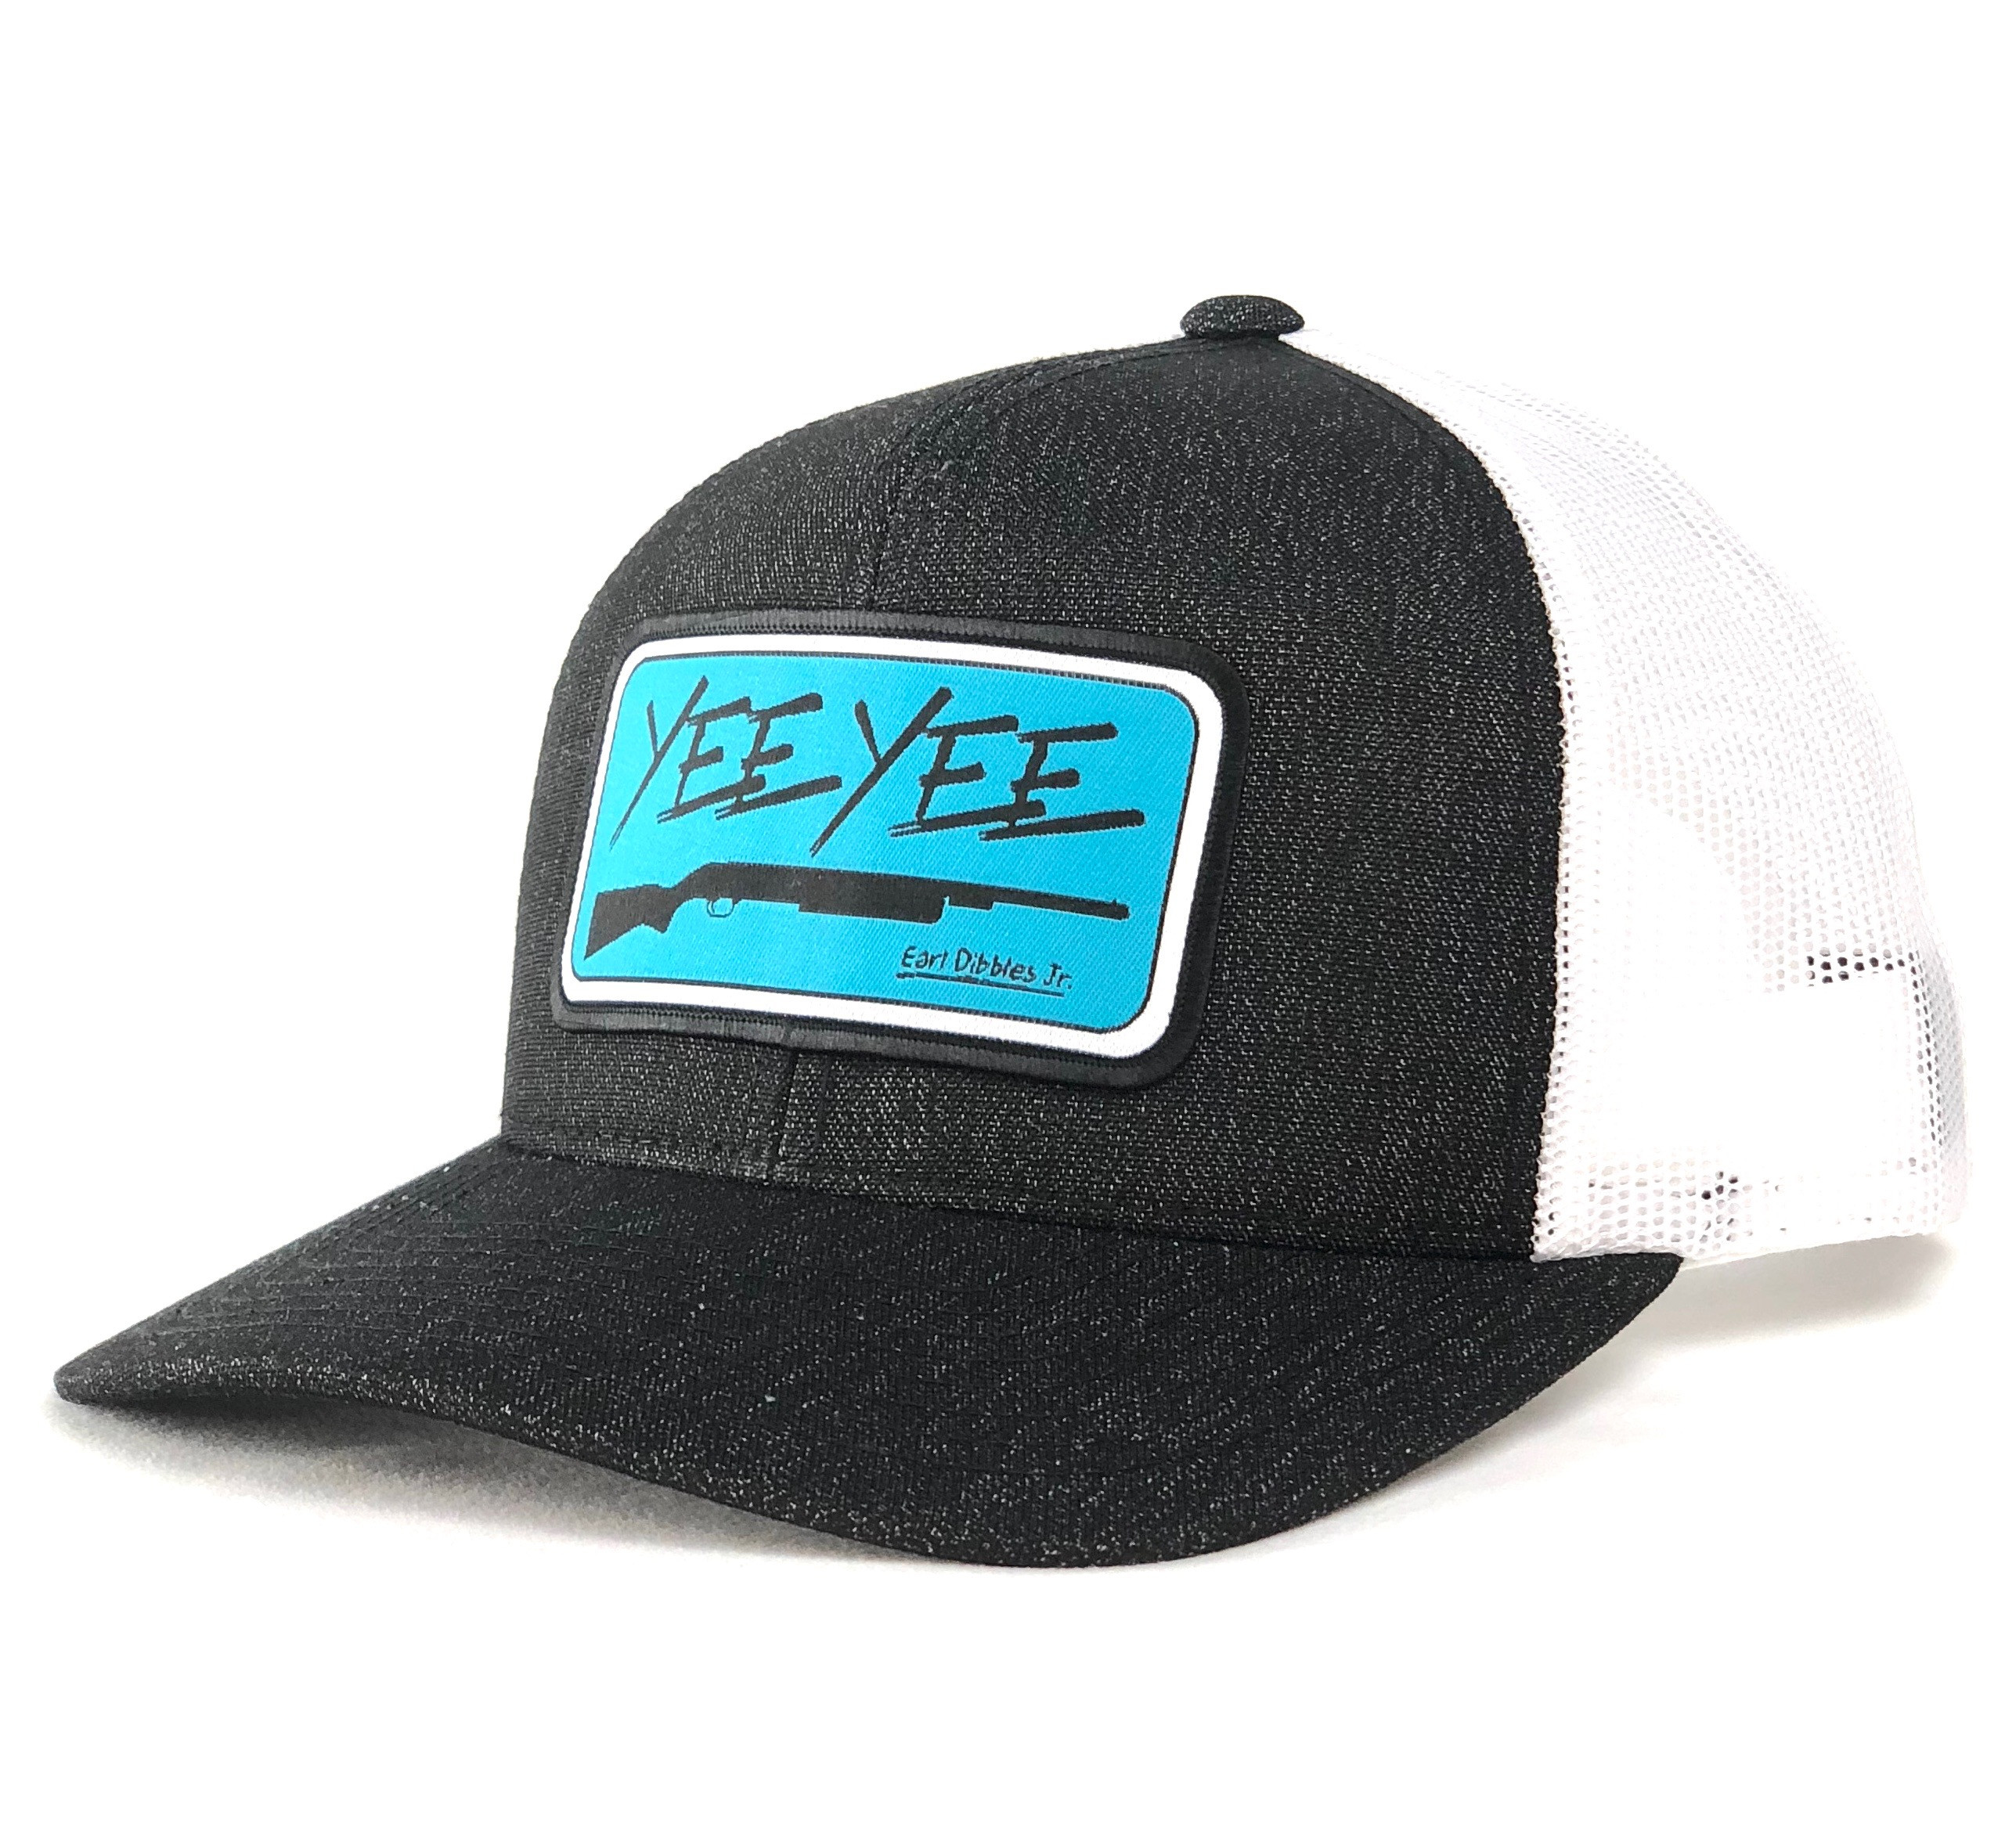 Teal Patch Hat - Granger Smith Store 761fe1e9fe7f